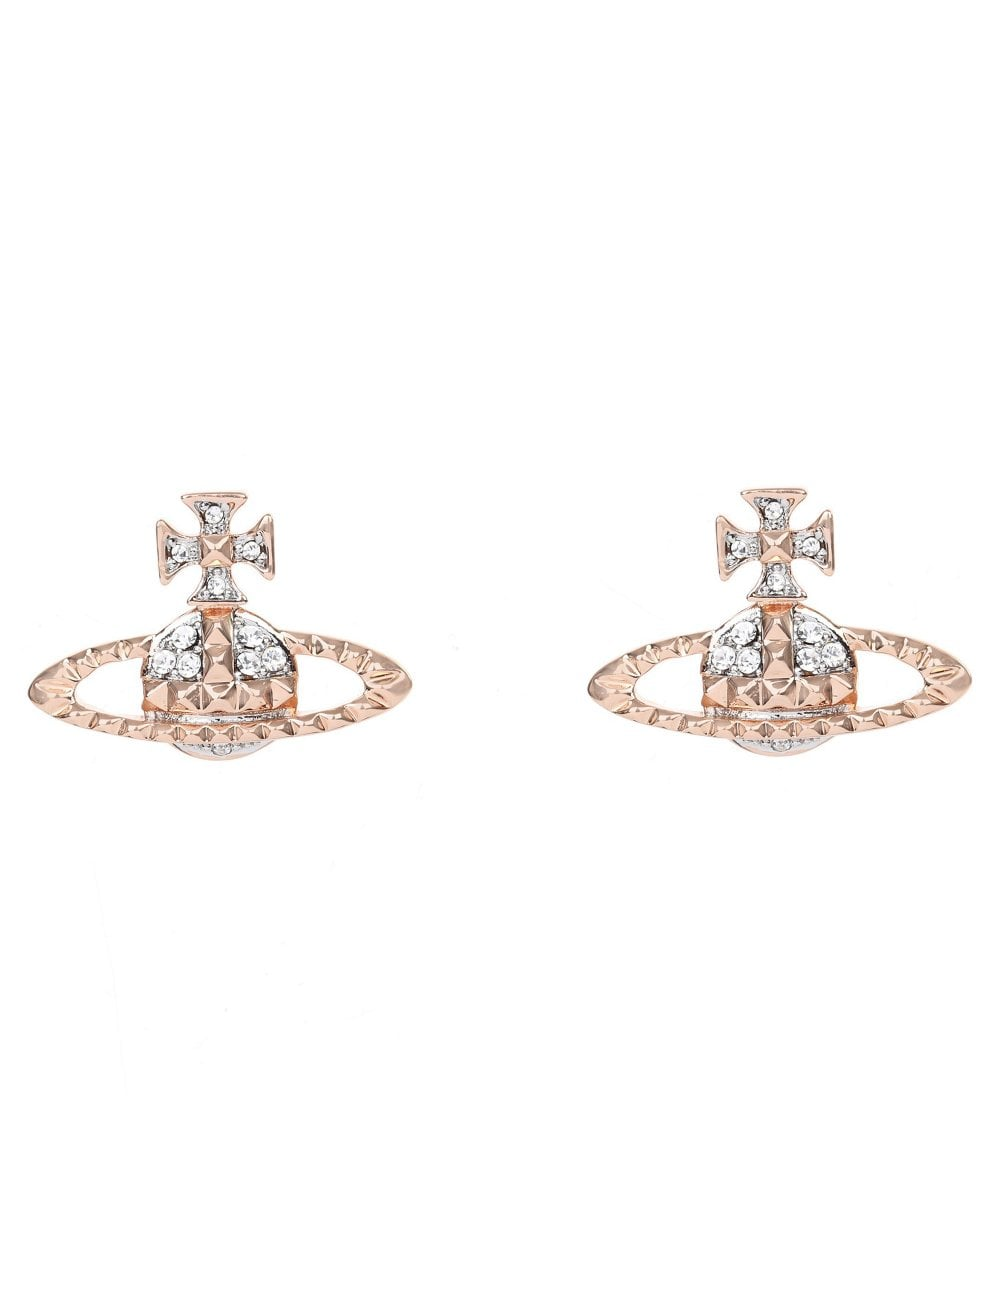 60a261794de Vivienne Westwood Mayfair Bas Relief Earrings Pink Gold/Rhodium